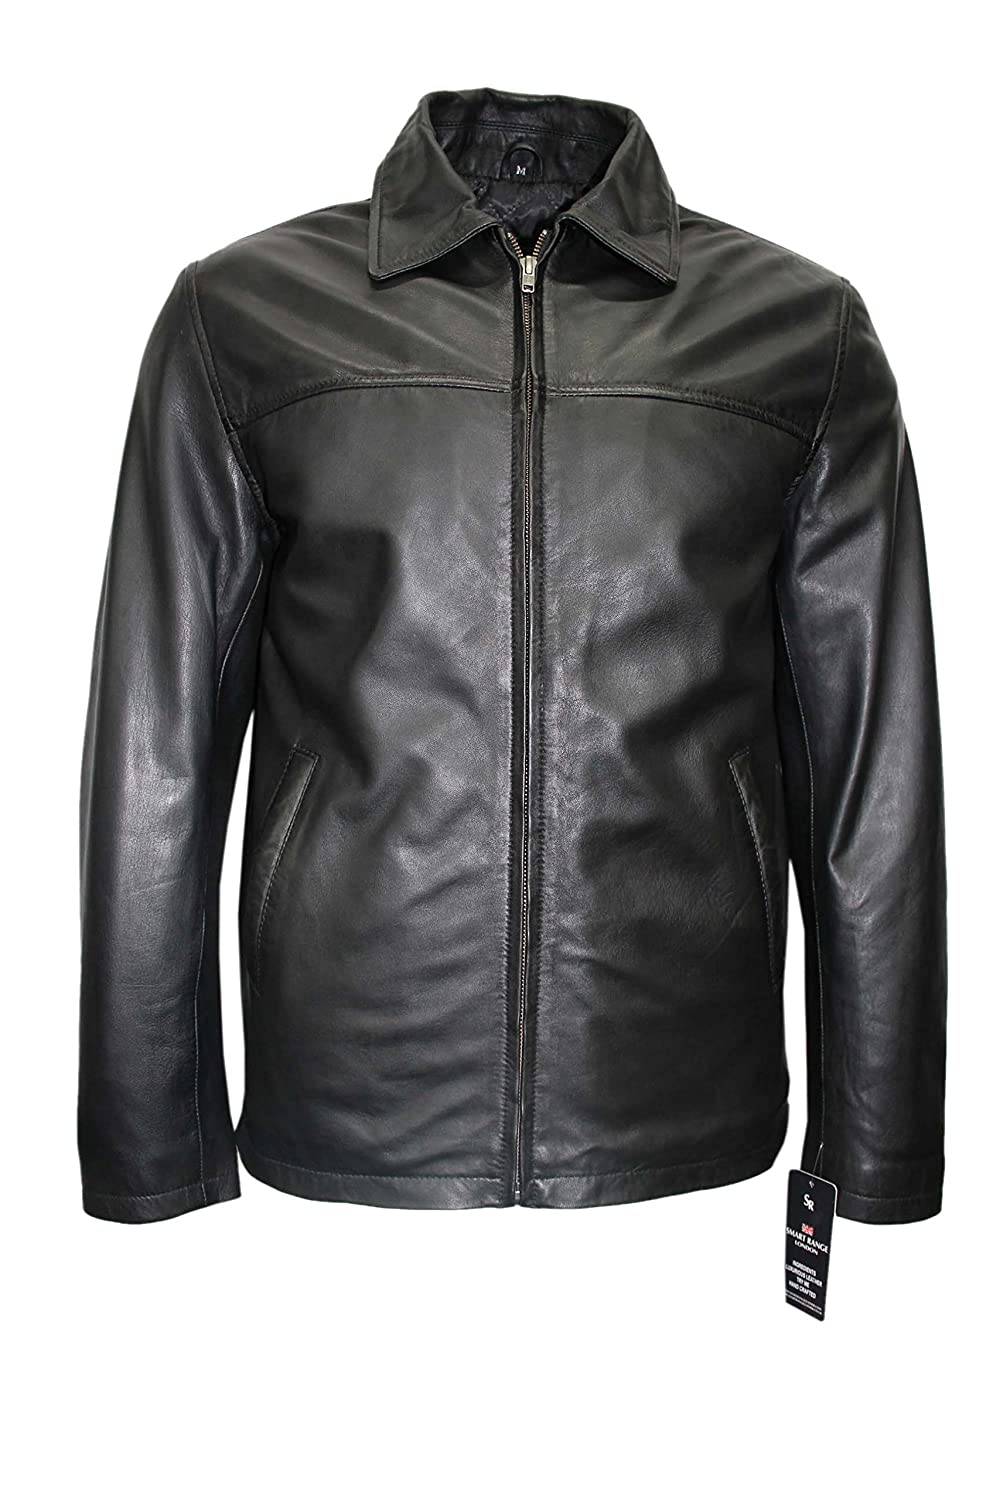 New Men's 1152 Classic Style Black Casual Soft Designer Lambskin Leather Jacket